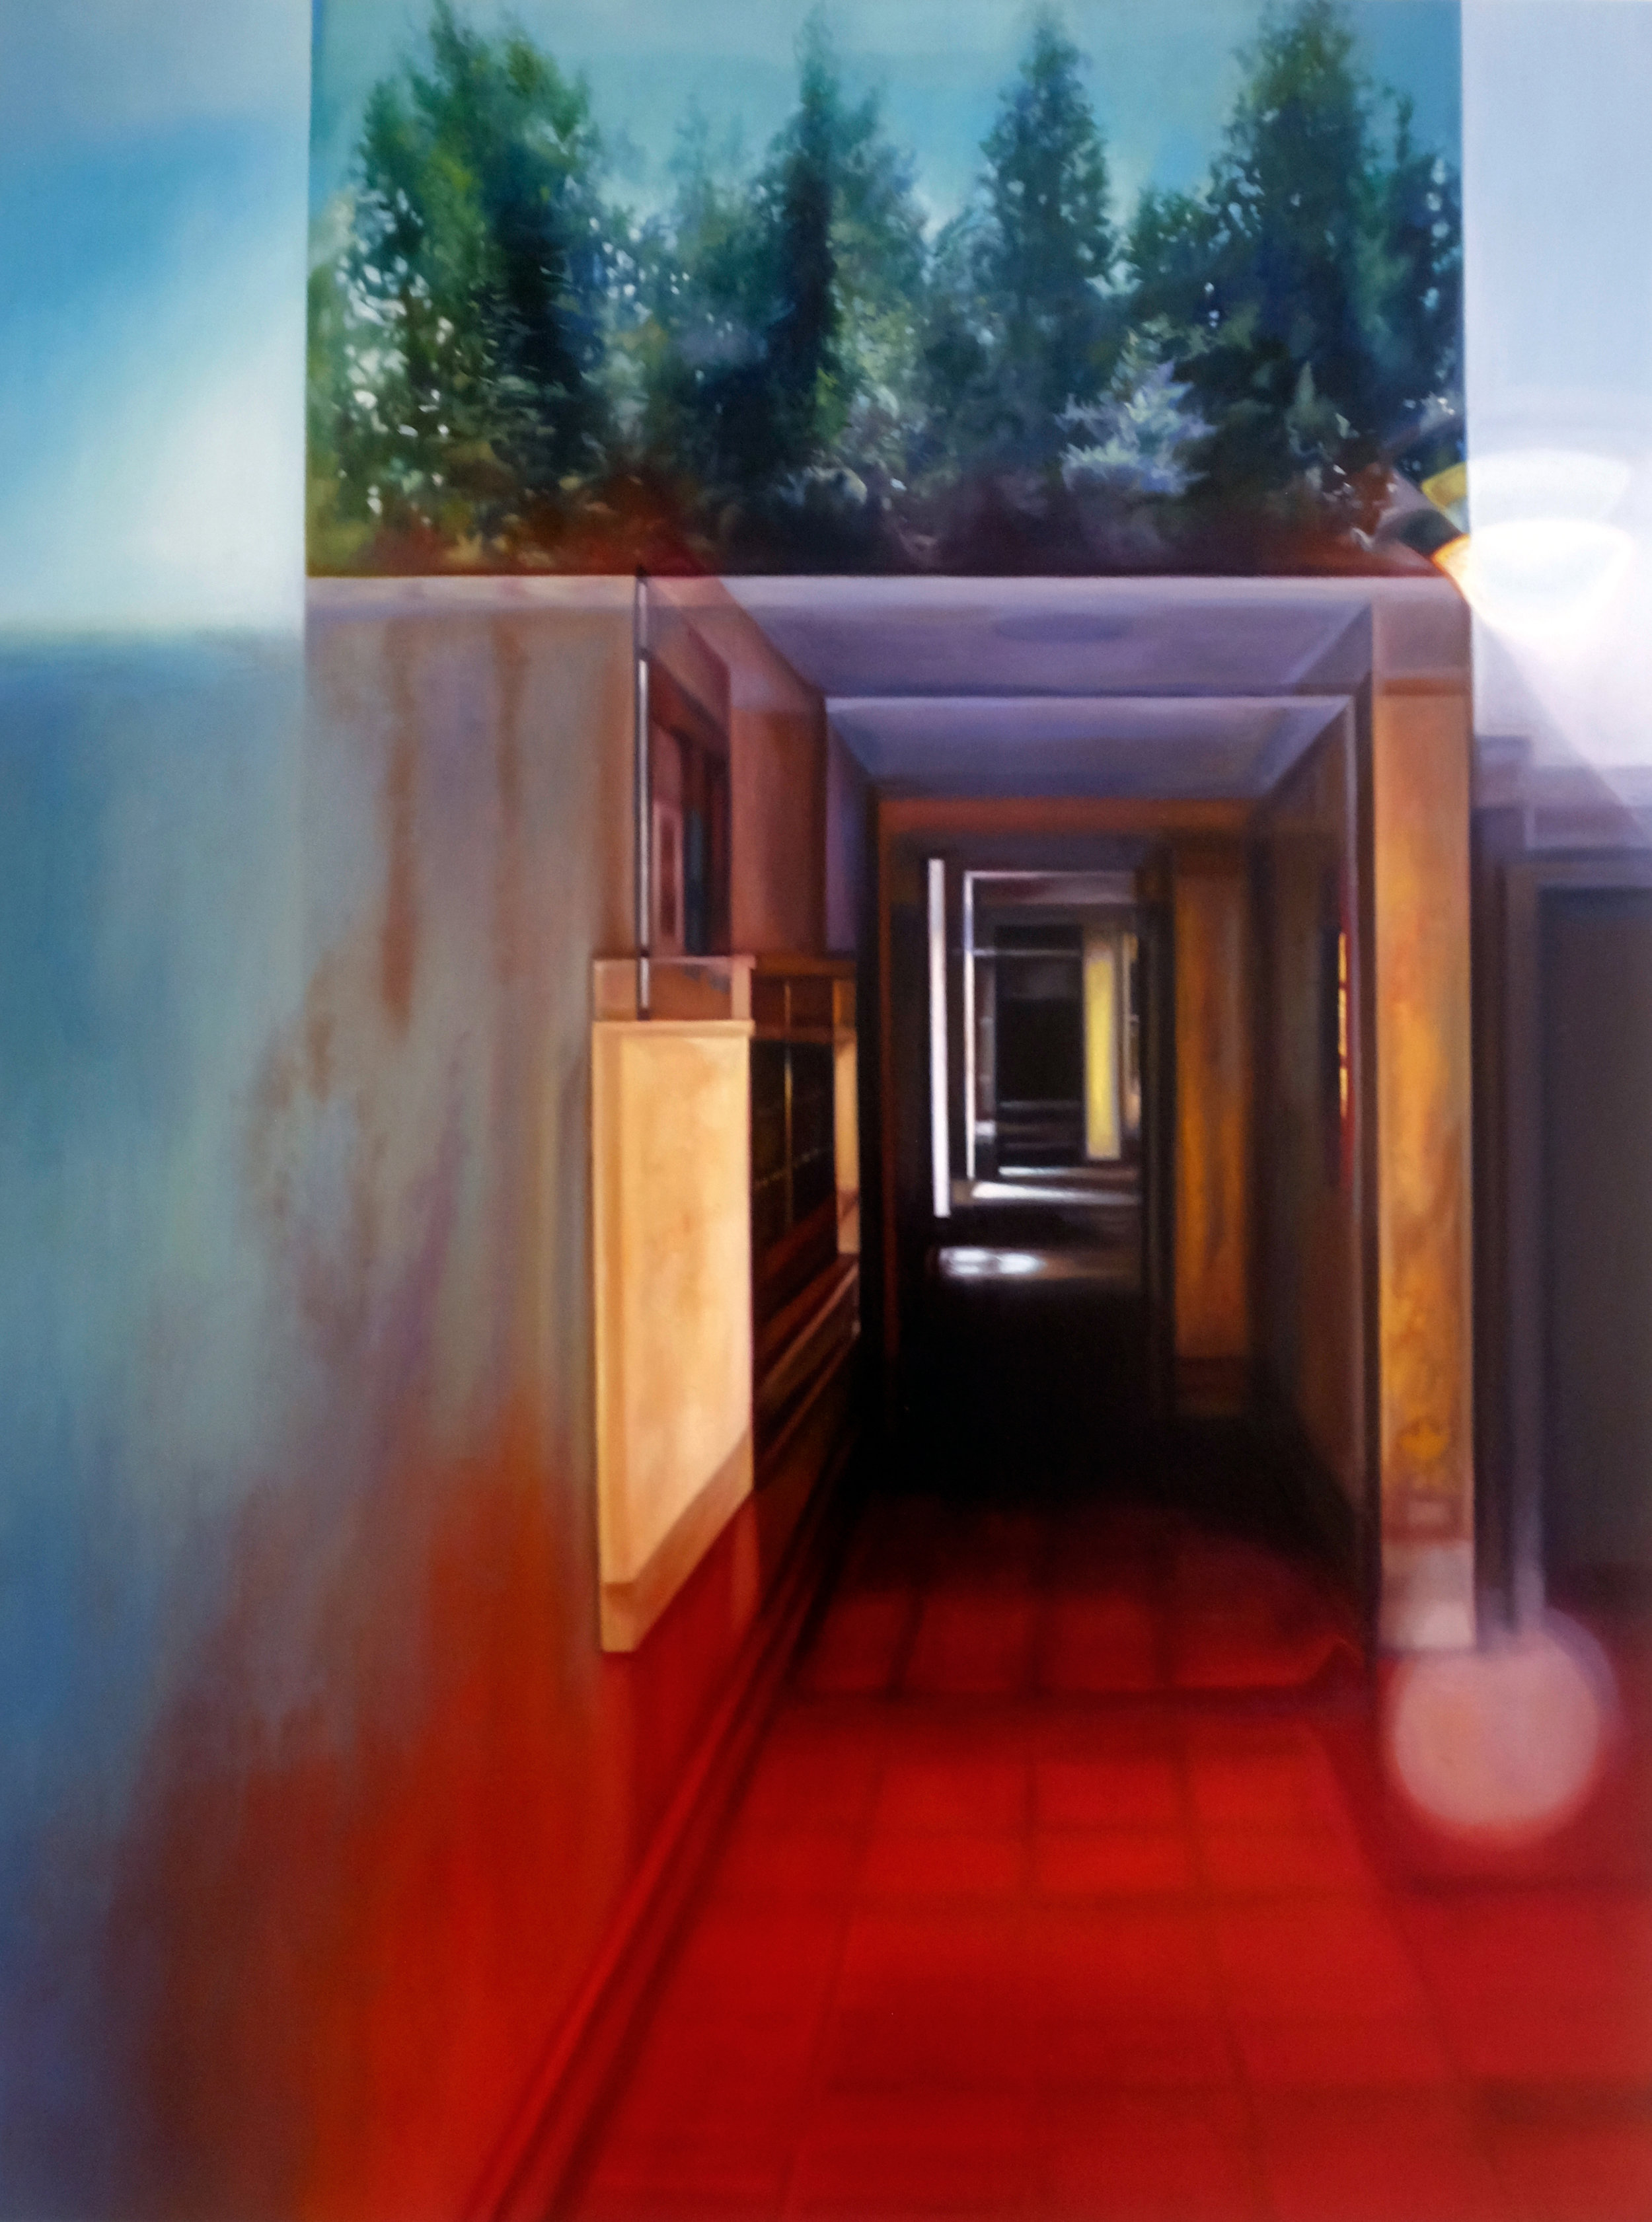 "Red Apartment Lobby with Trees    Oil on hardwood panel  24"" x 18""  2018"